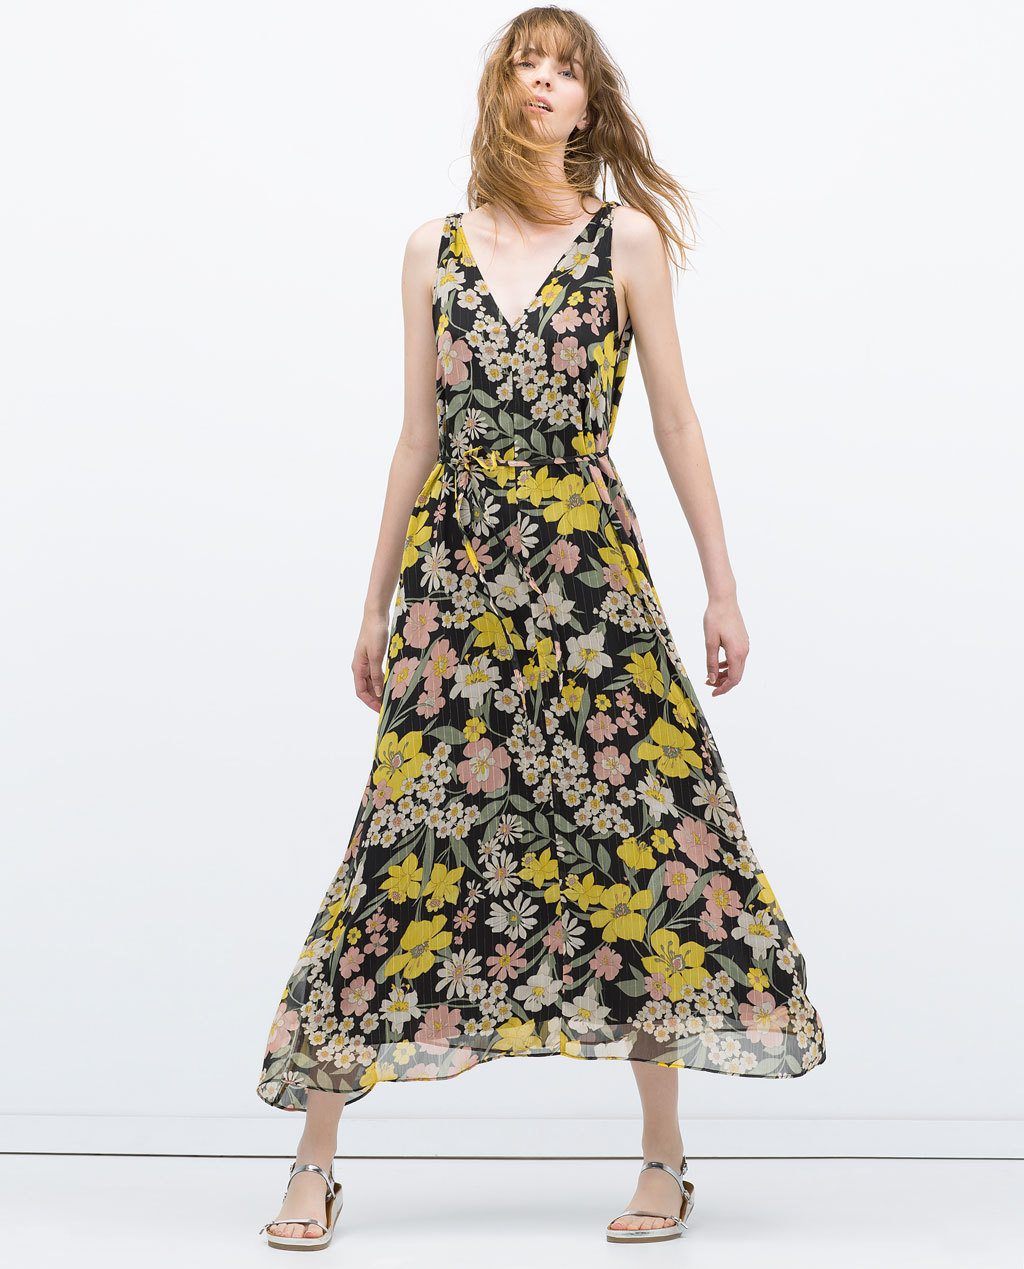 Long Printed Dress - style: faux wrap/wrap; neckline: low v-neck; sleeve style: sleeveless; length: ankle length; secondary colour: mustard; predominant colour: black; occasions: casual, occasion; fit: fitted at waist & bust; fibres: polyester/polyamide - 100%; hip detail: soft pleats at hip/draping at hip/flared at hip; sleeve length: sleeveless; texture group: sheer fabrics/chiffon/organza etc.; pattern type: fabric; pattern size: big & busy; pattern: florals; season: s/s 2015; multicoloured: multicoloured